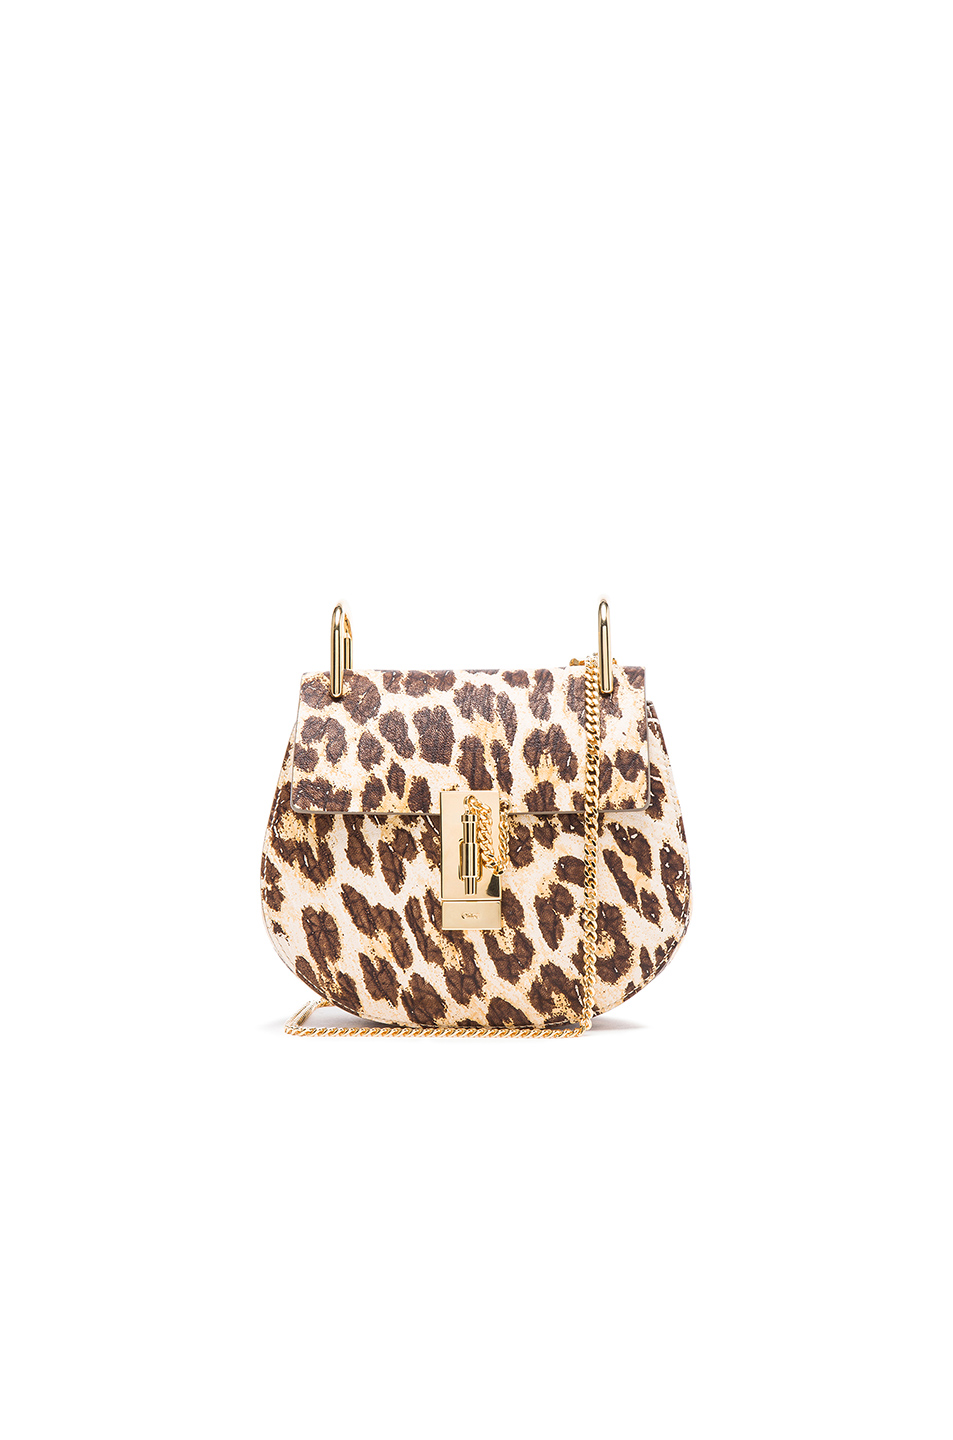 CHLOE - DREW MINI SHOULDER BAG